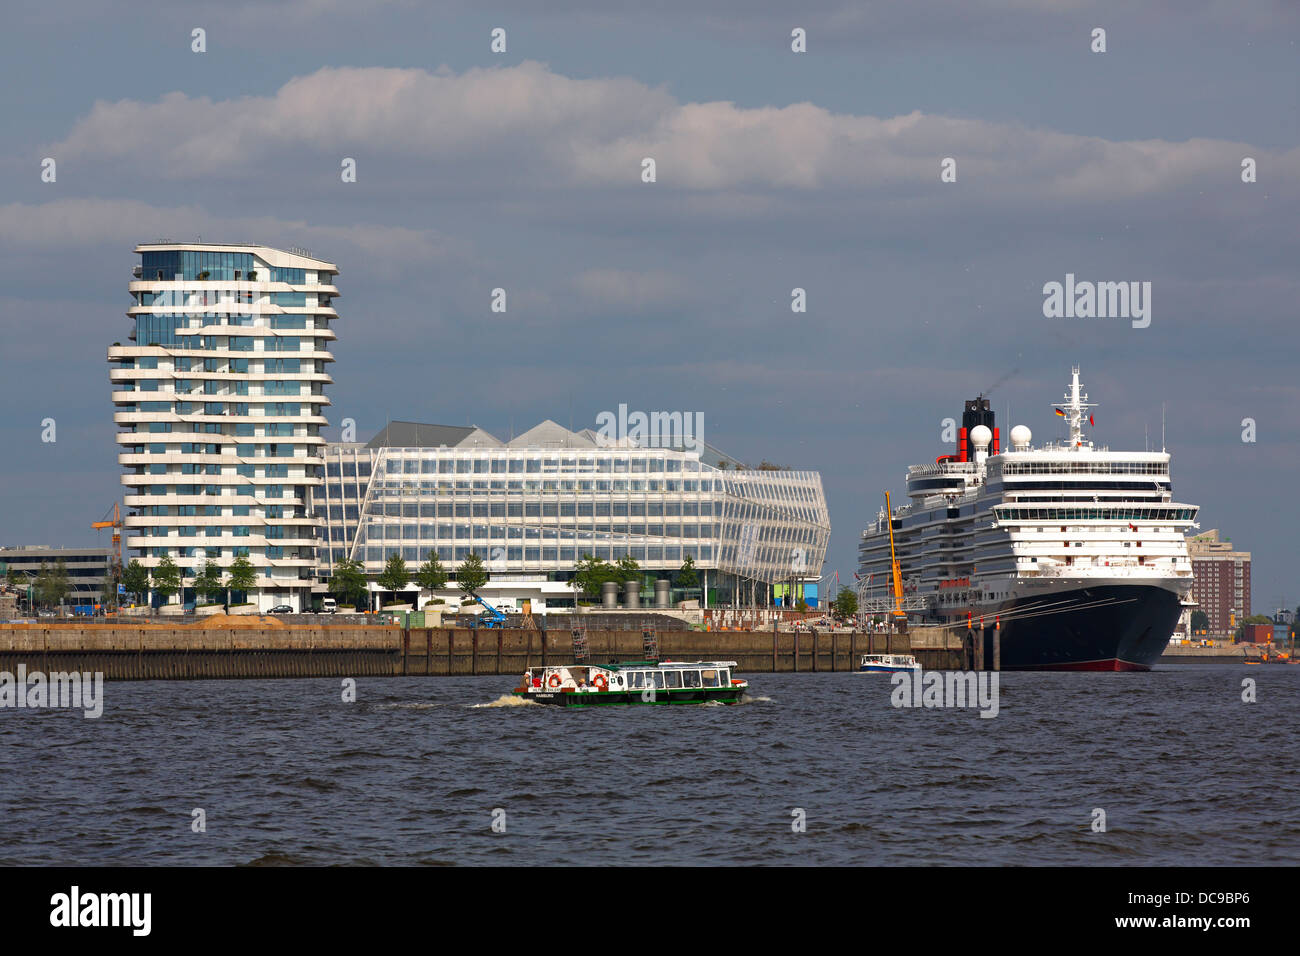 Cruise ship Queen Elizabeth in the Port of Hamburg, next to Marco Polo Tower and Unilever House - Stock Image